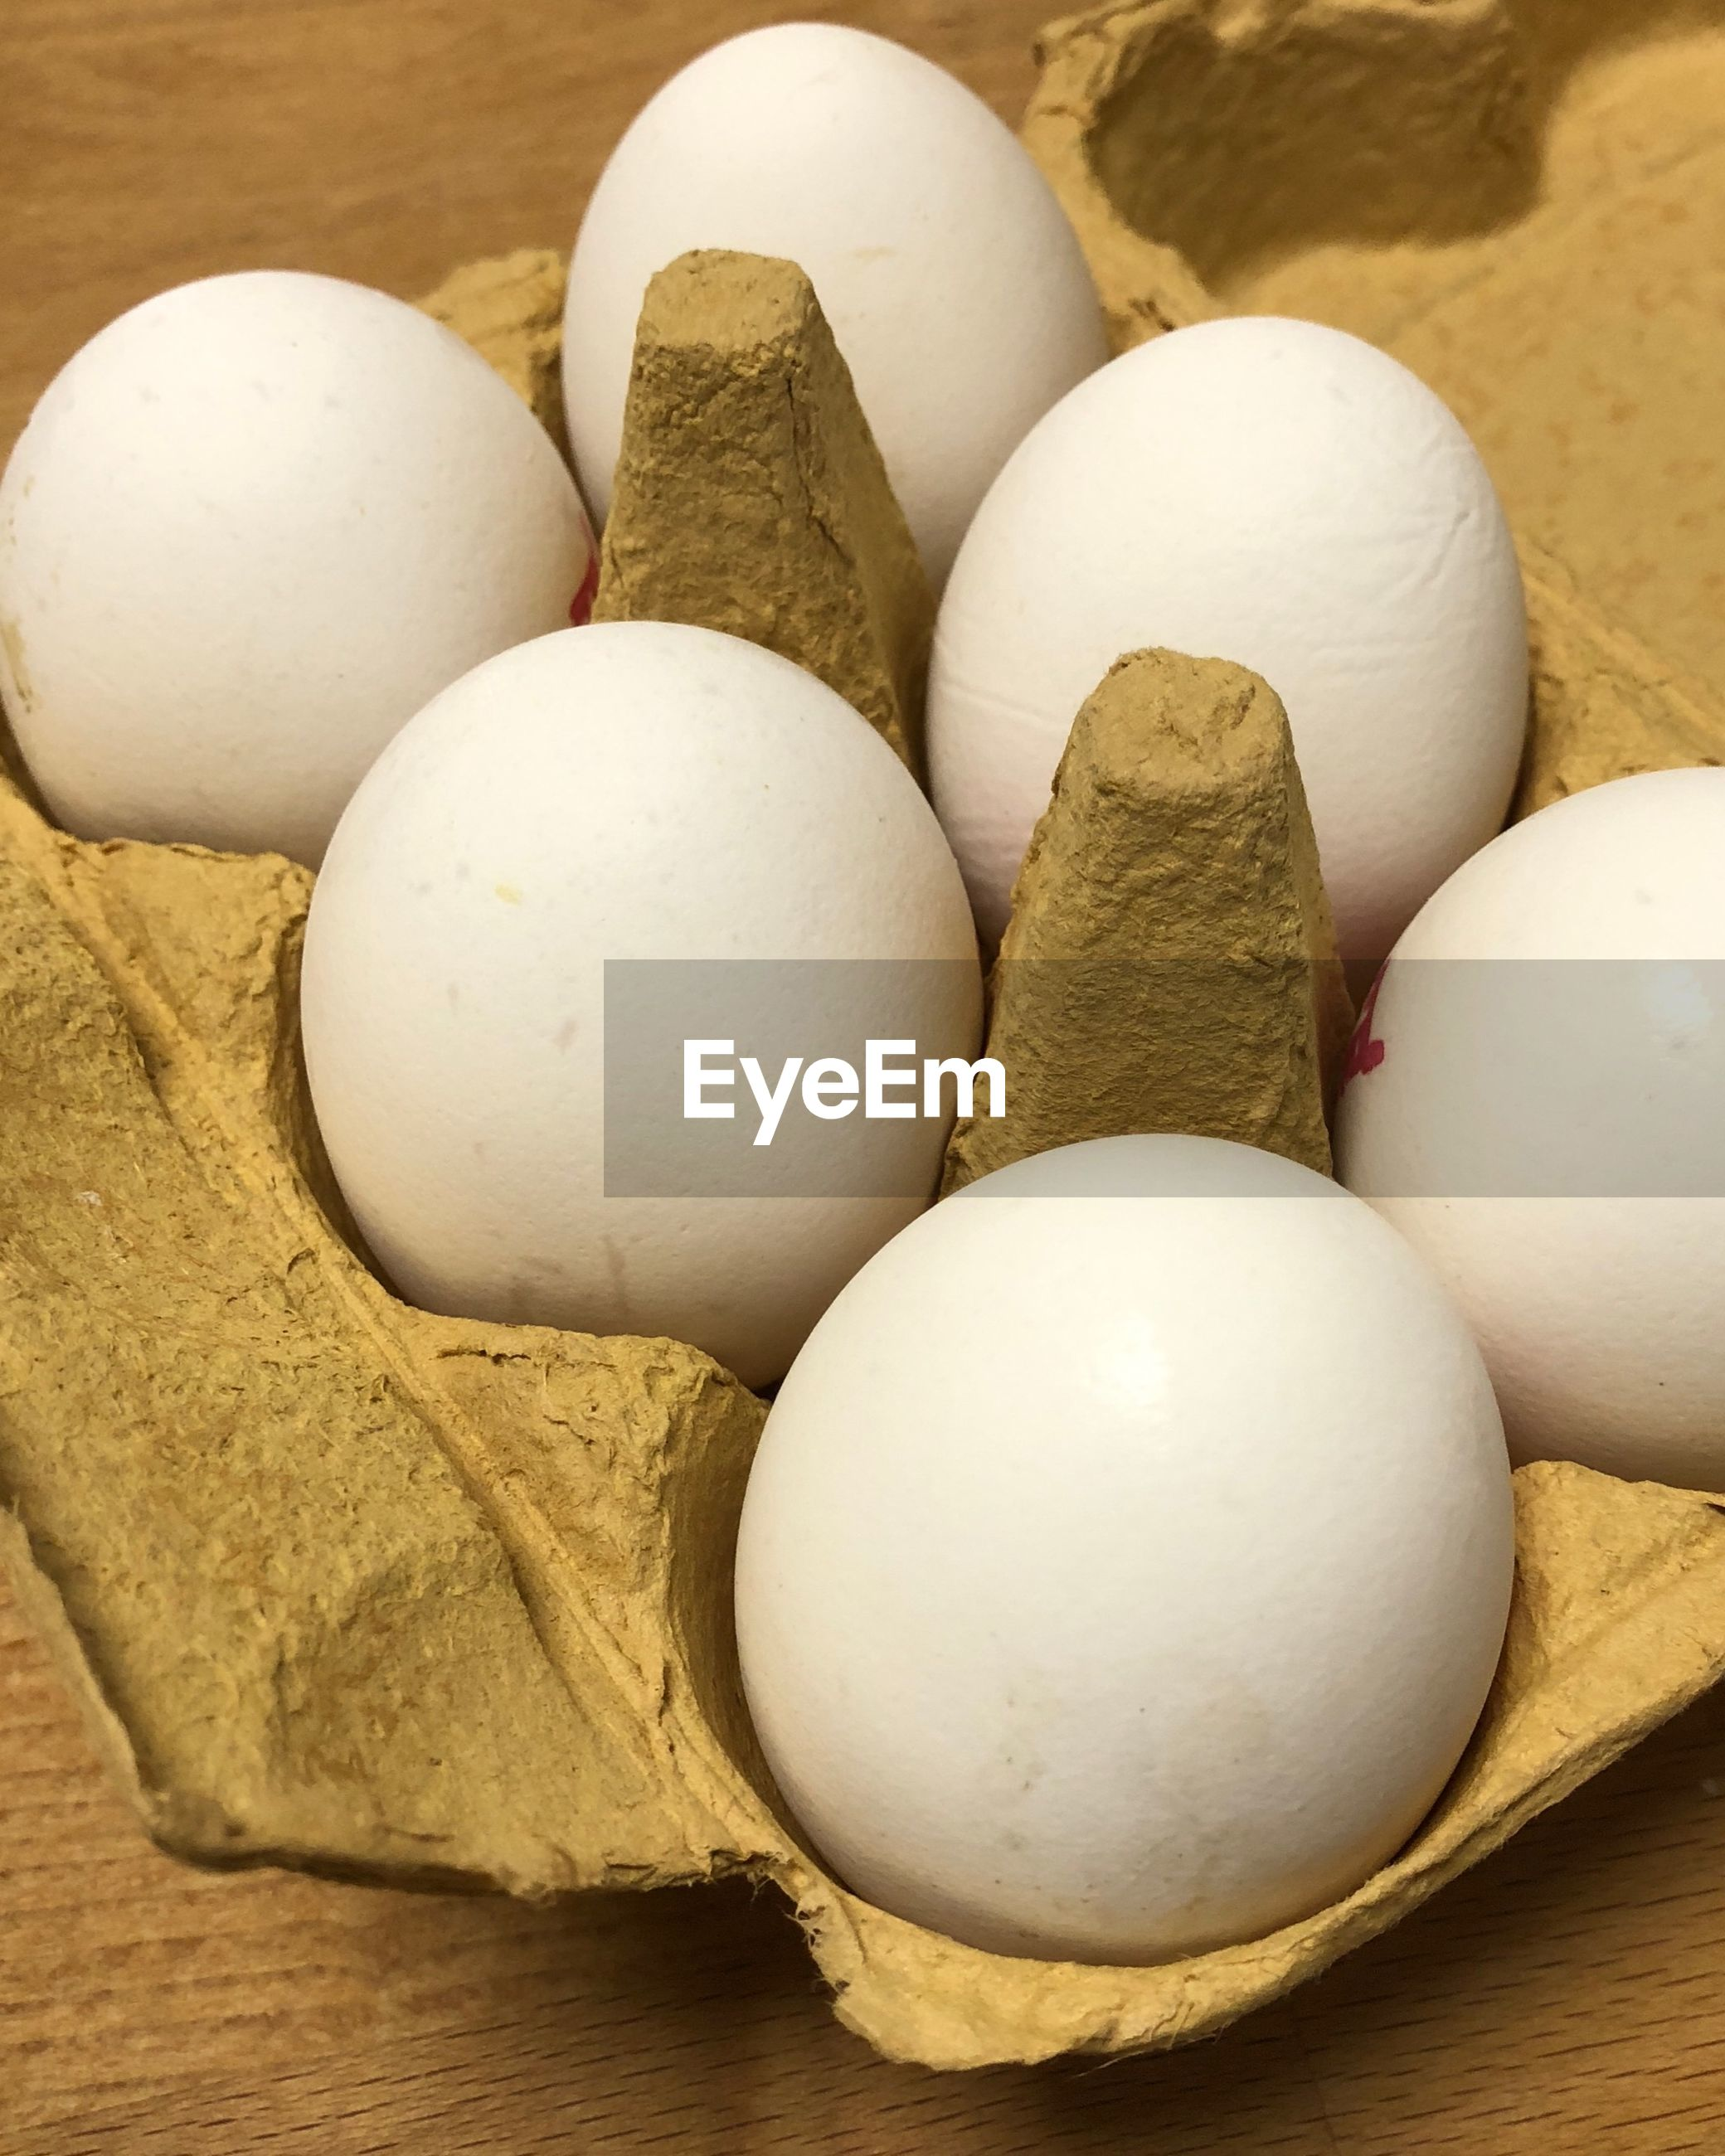 HIGH ANGLE VIEW OF EGGS ON WHITE SURFACE